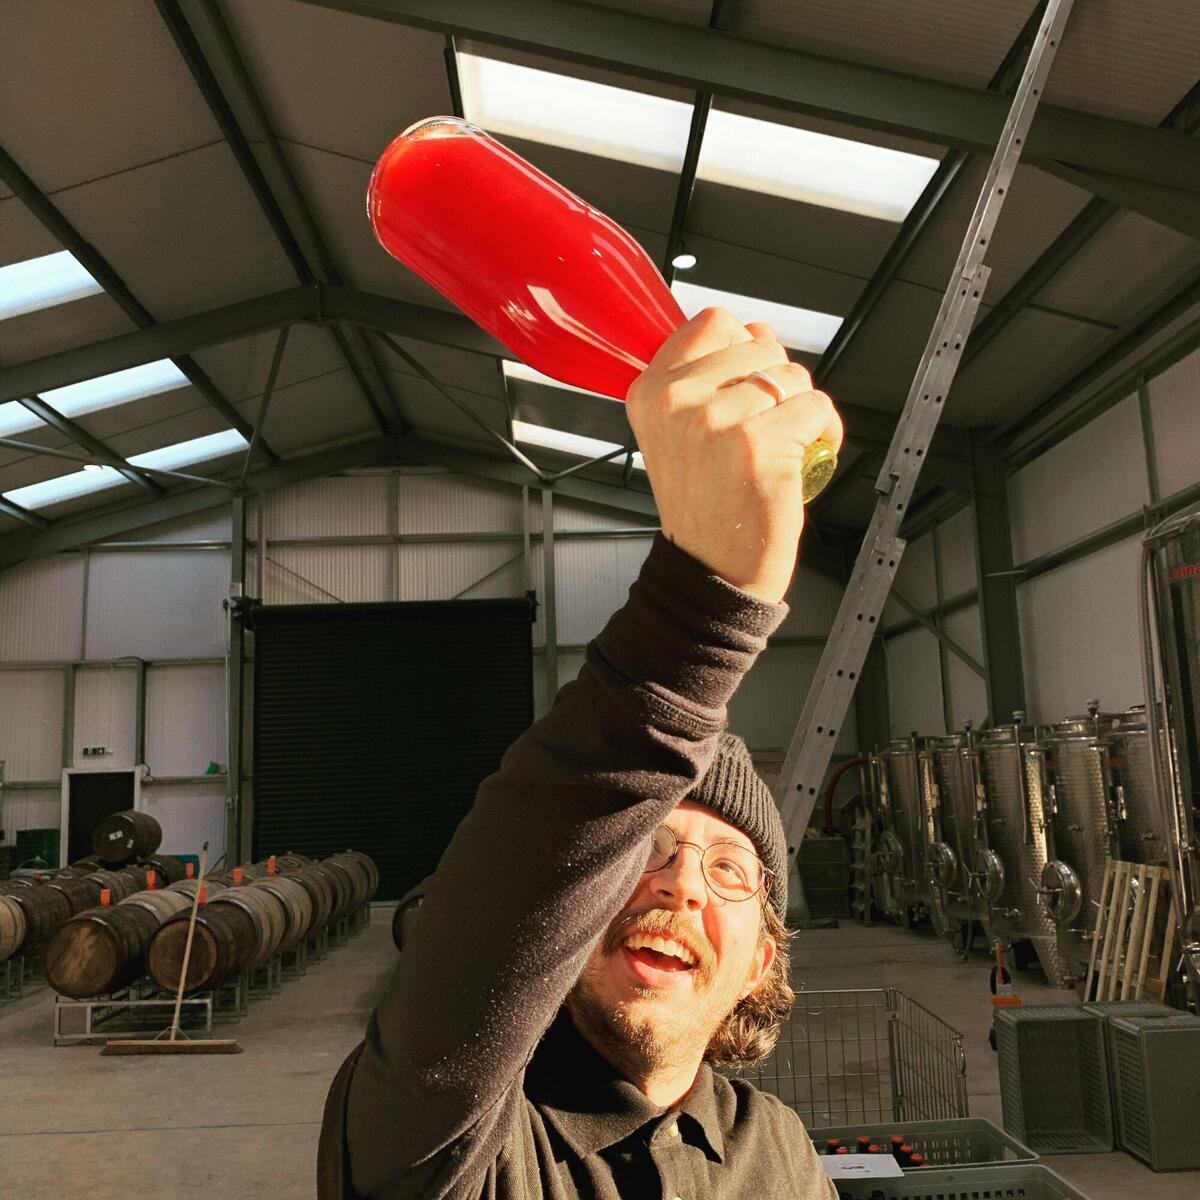 Chocks away 🍎 It's not just straight cider and perry crafted here, as demonstrated by assistant cidermaker, Blair Cote